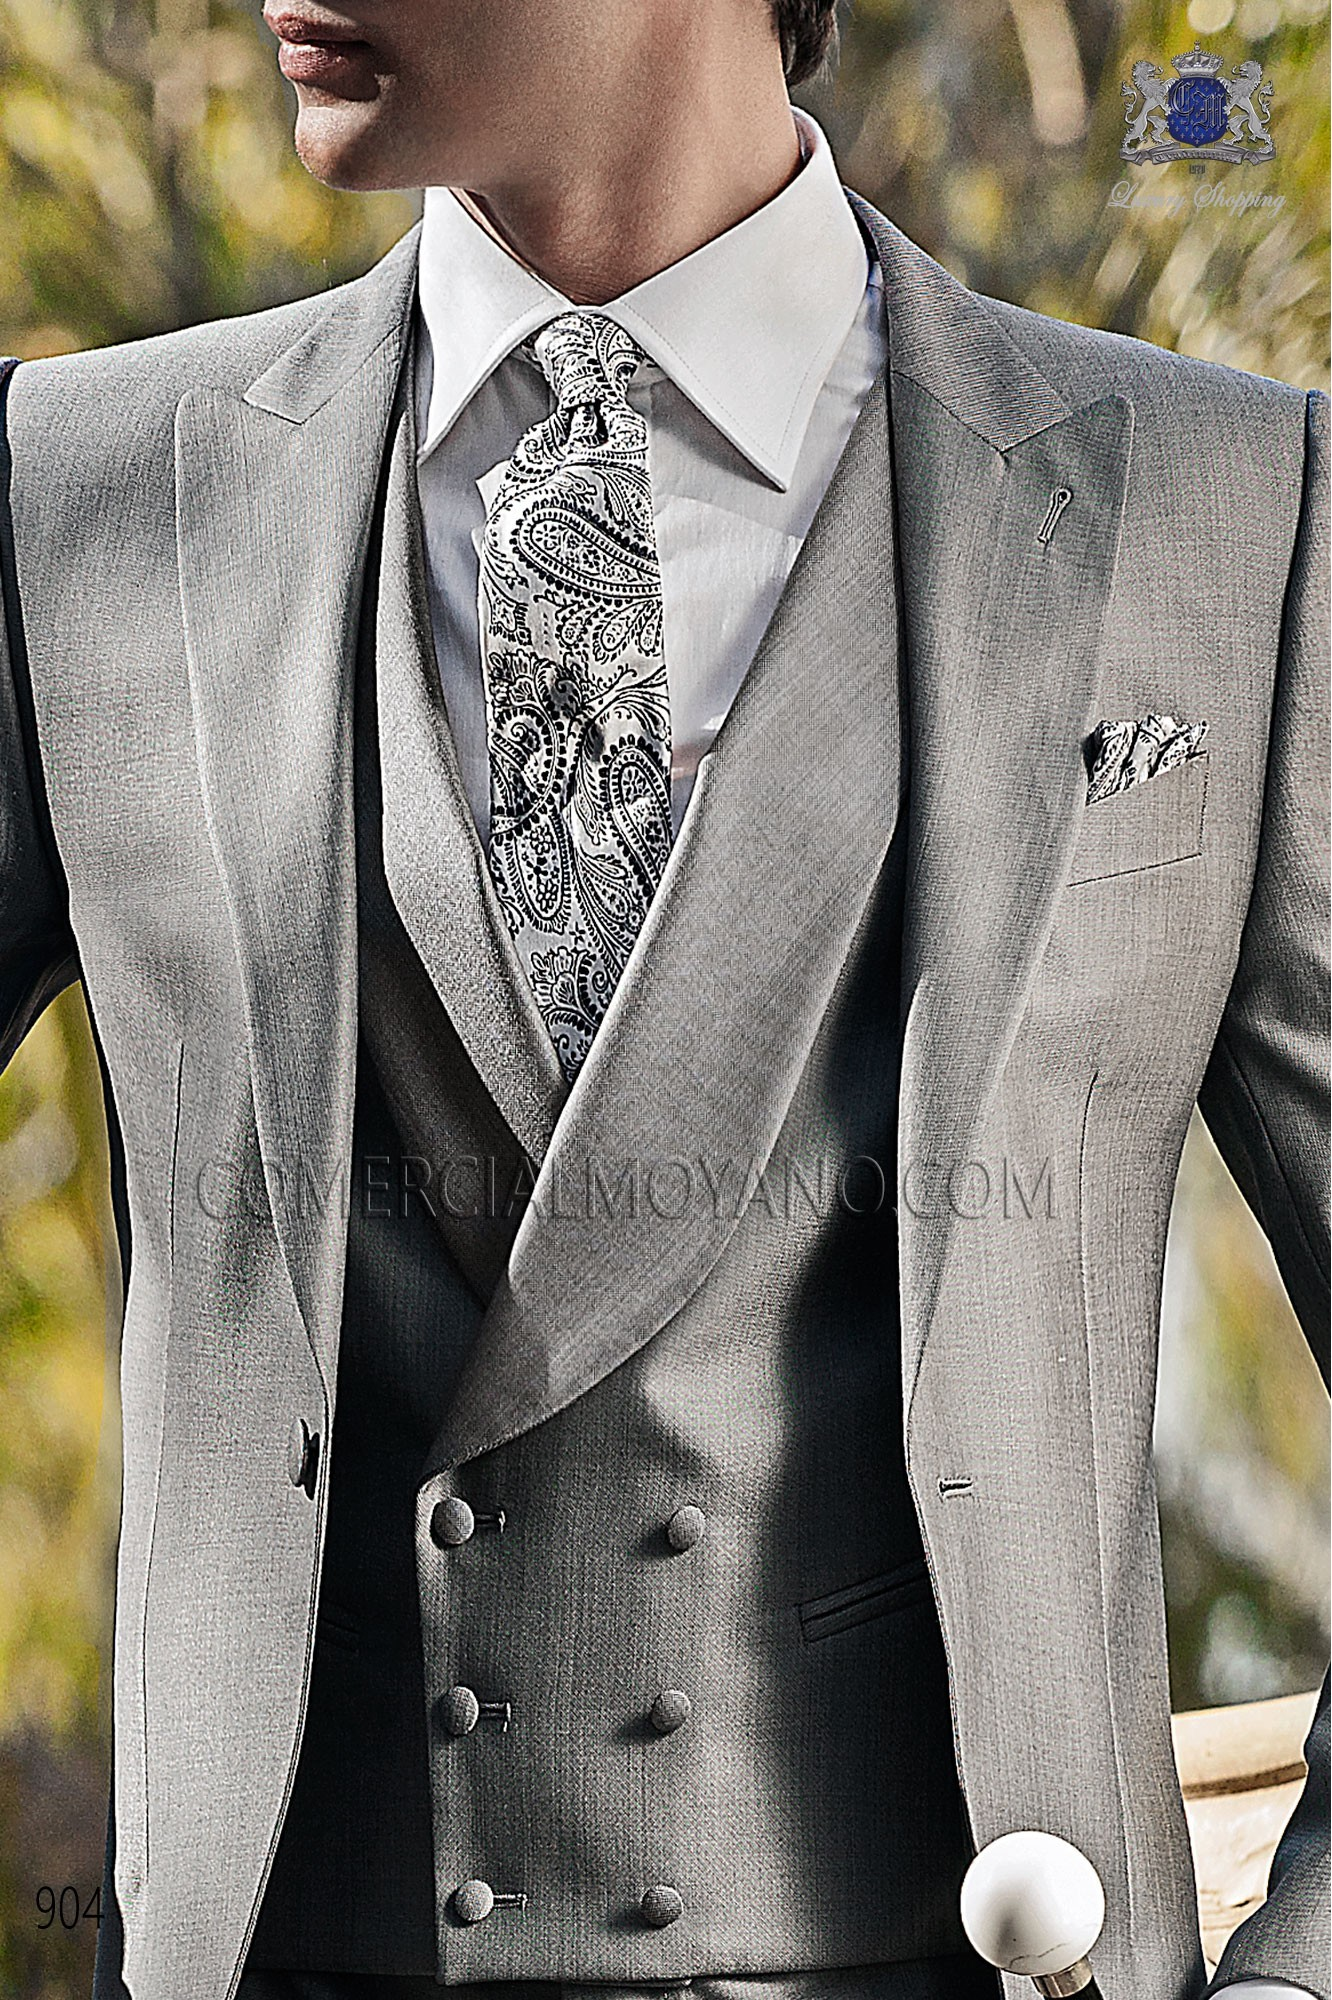 Italian gentleman gray men wedding suit, model: 904 Ottavio Nuccio Gala Gentleman Collection